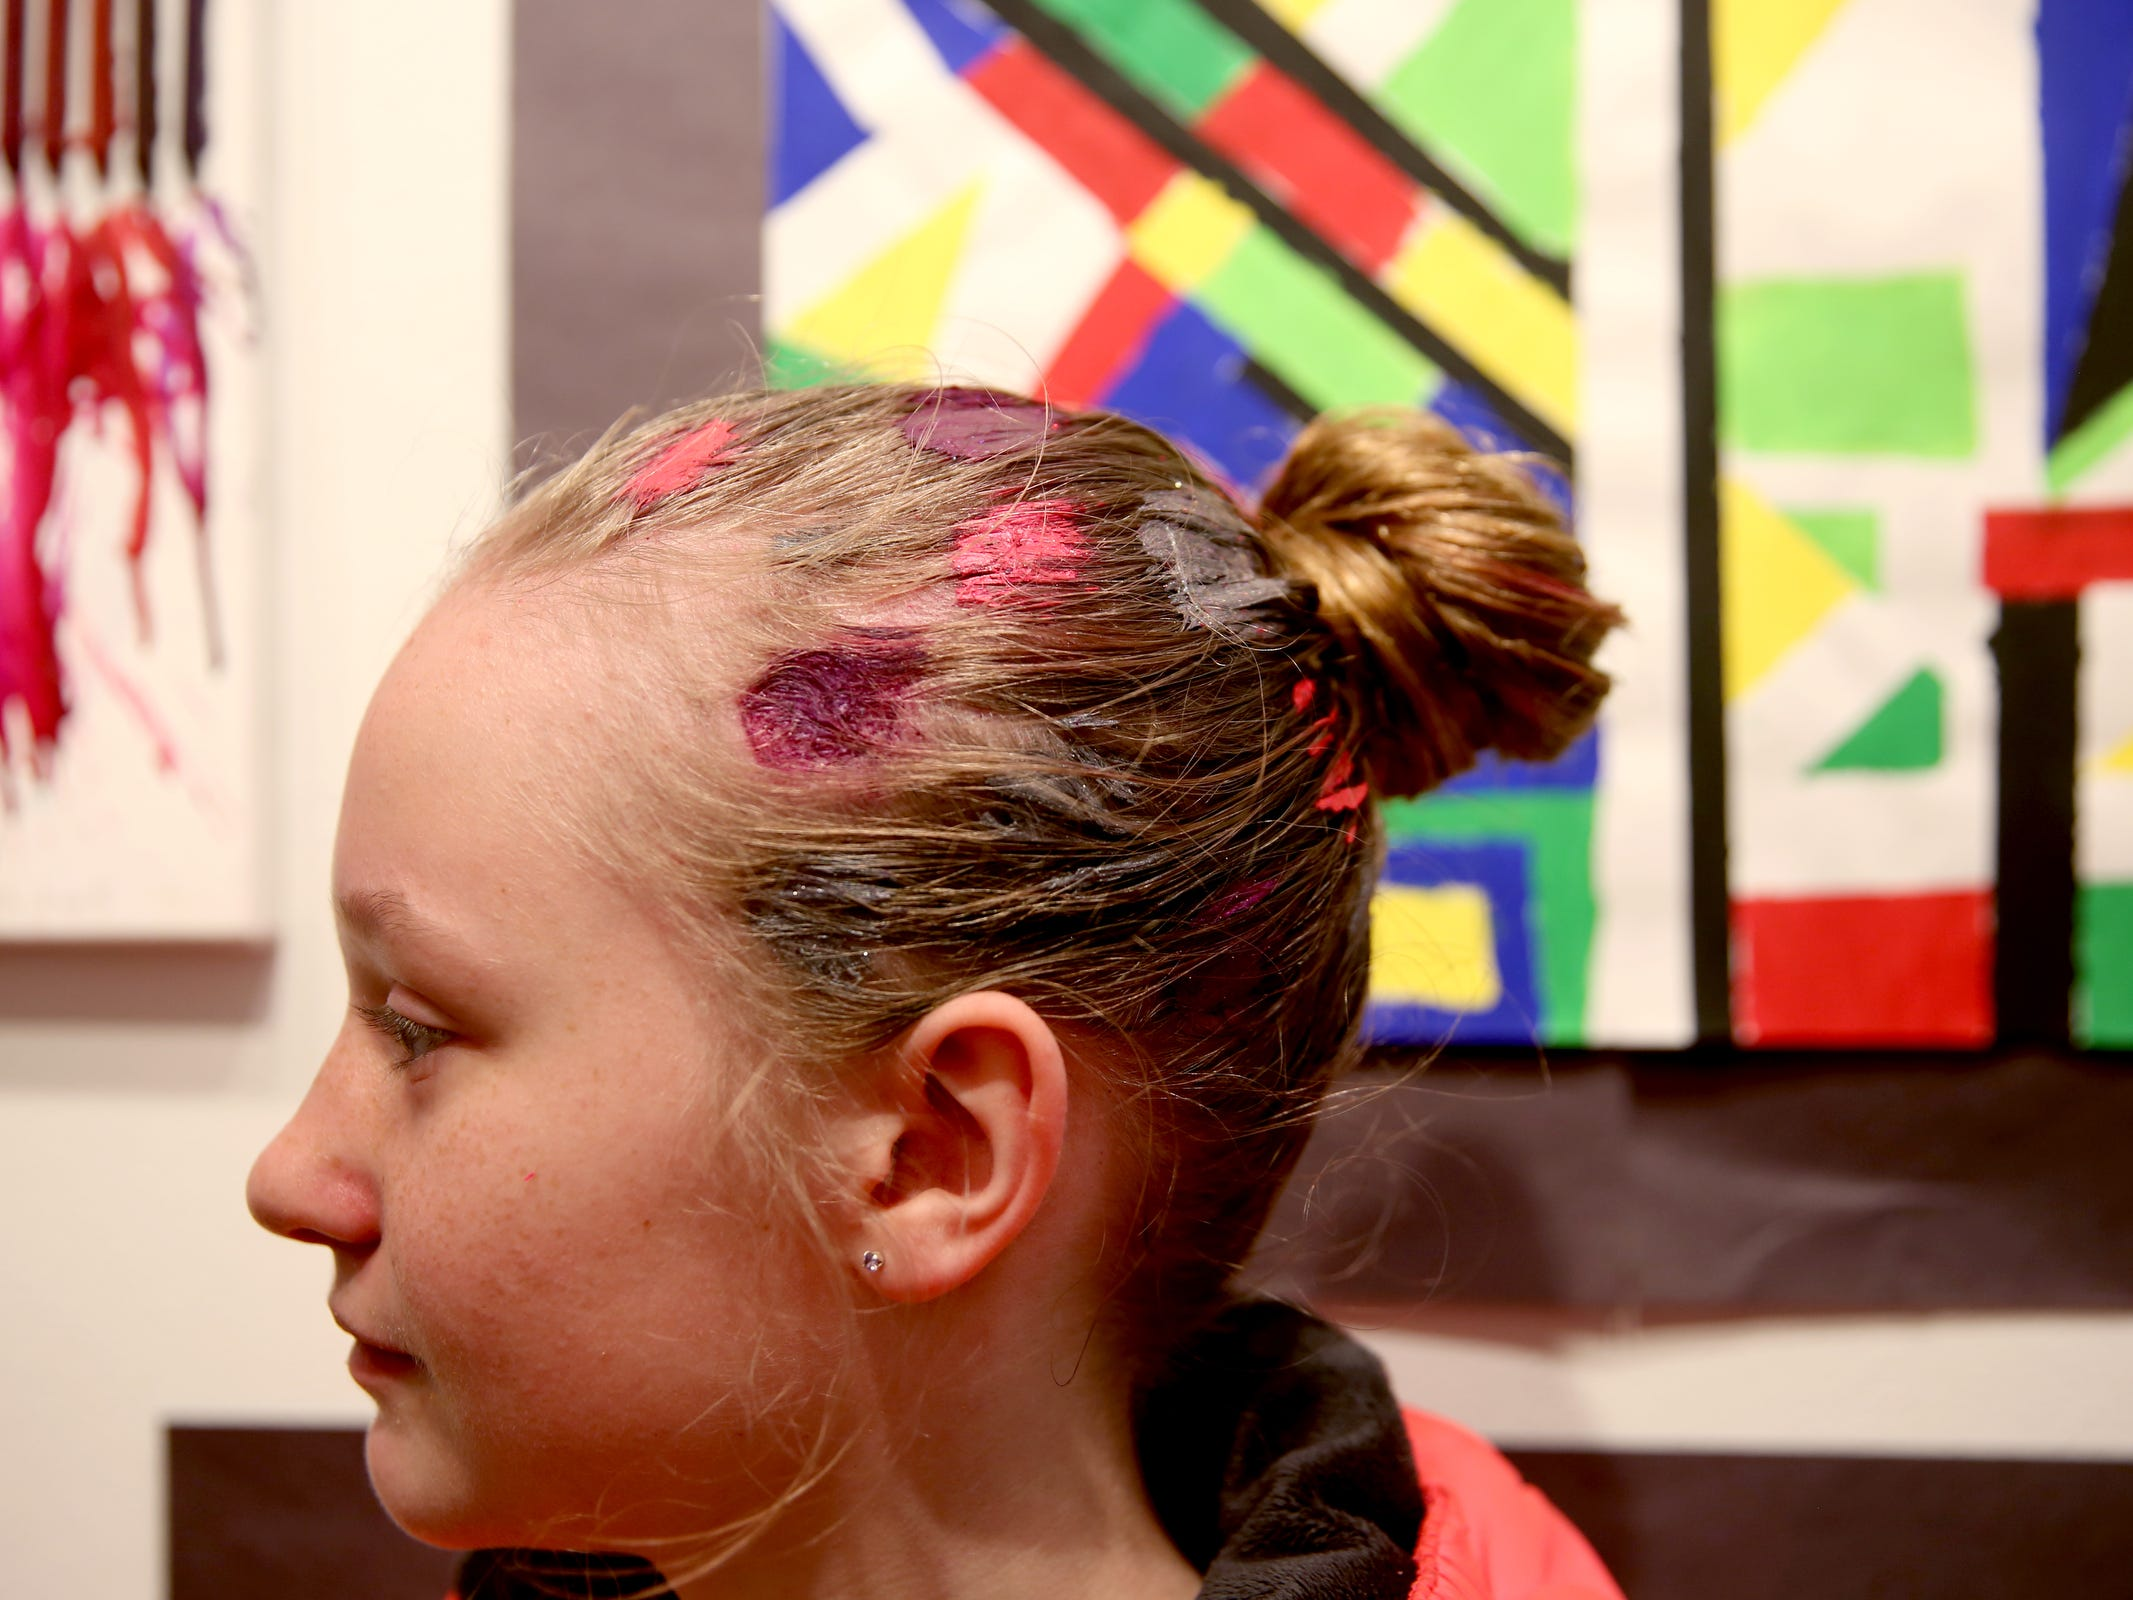 Liberty Skyler, a Mid-Valley Christian Academy fourth-grader, has painted polka-dots in her hair during the awards reception for the 10th annual Young Artists' Showcase at the Bush Barn Art Center in Salem on March 9, 2019. The exhibit features artwork by more than 400 students in Marion, Polk and Yamhill counties and runs through April 20.